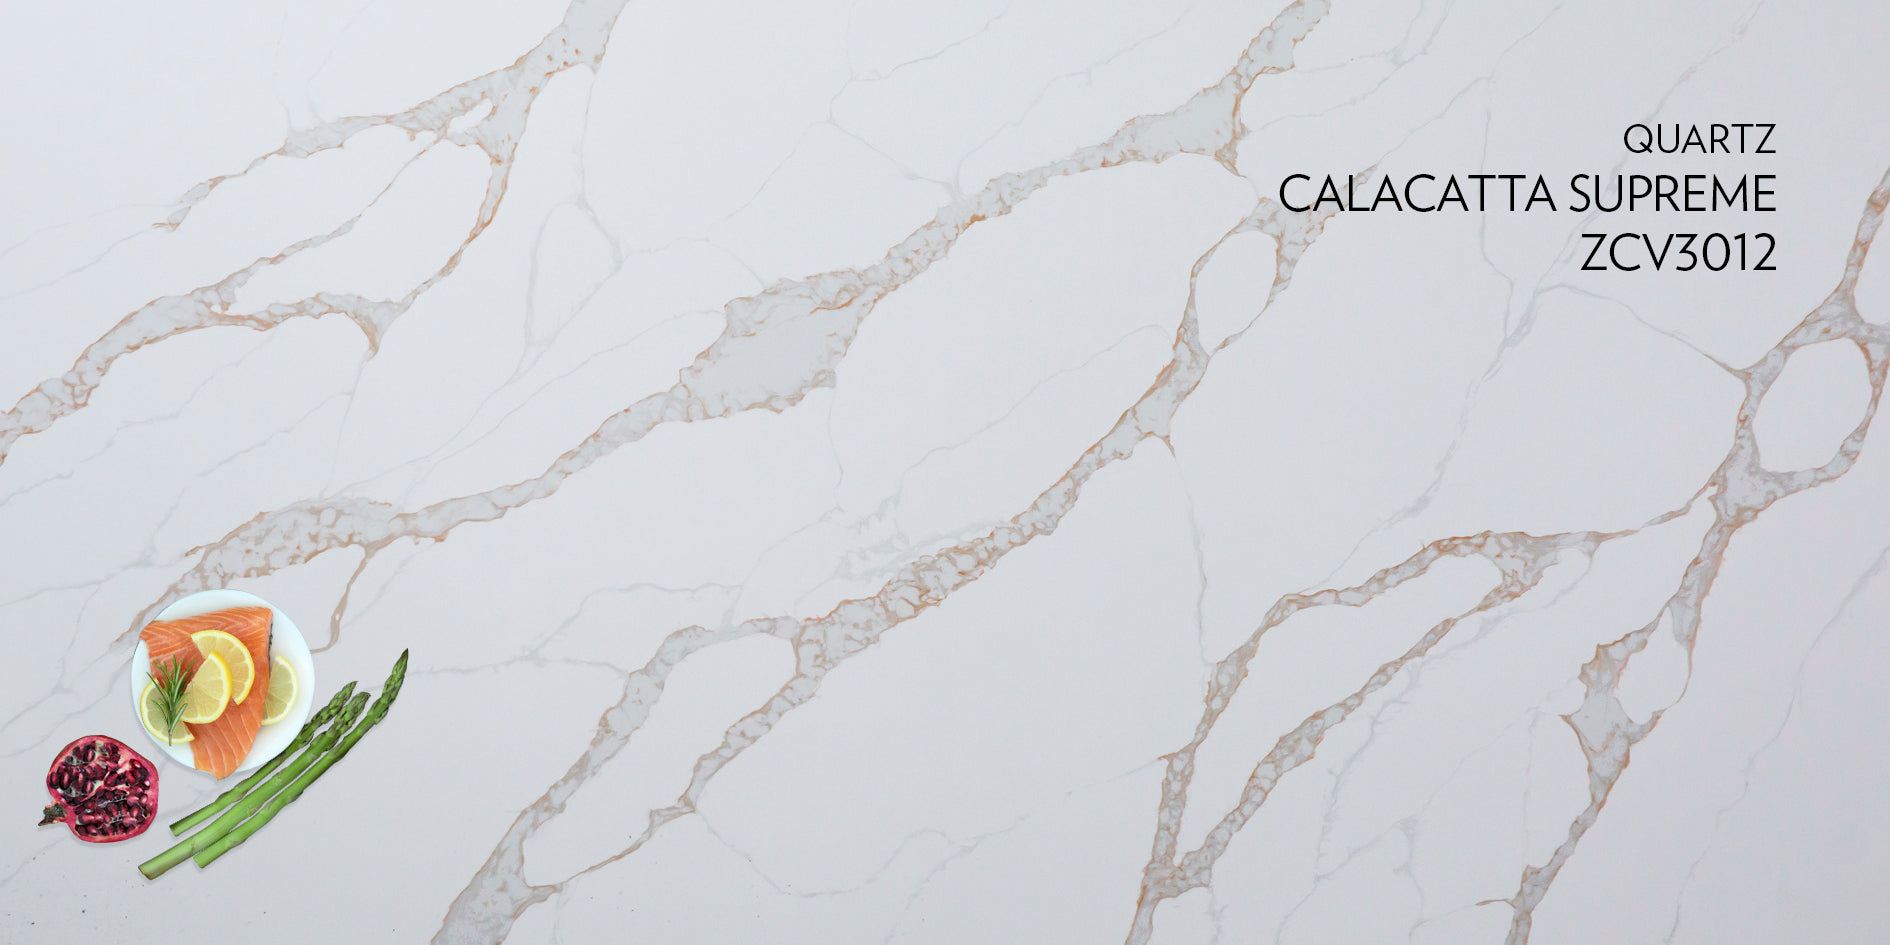 https://www.zcbuildingsupply.com/products/copy-of-3cm-quartz-126x-63-countertop-calacatta-supreme-self-pick-up-only?_pos=1&_sid=a699b8016&_ss=r